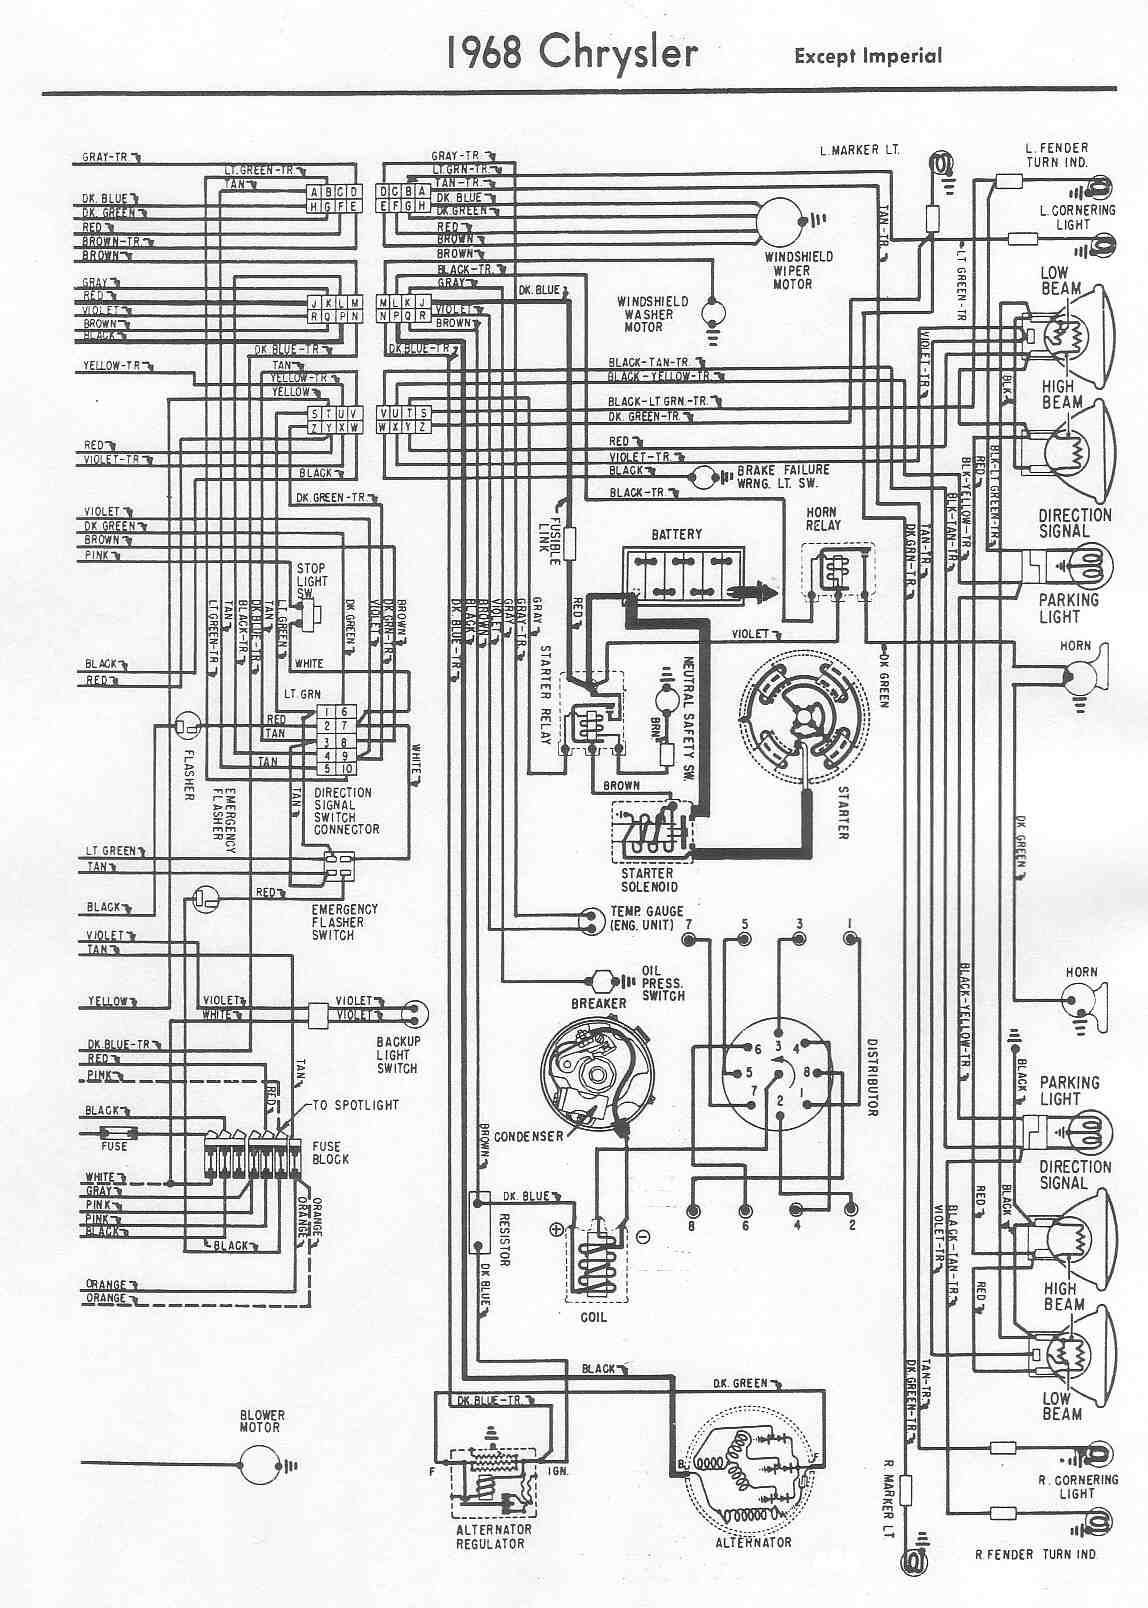 Infinity 36670 Amp Wiring Diagram